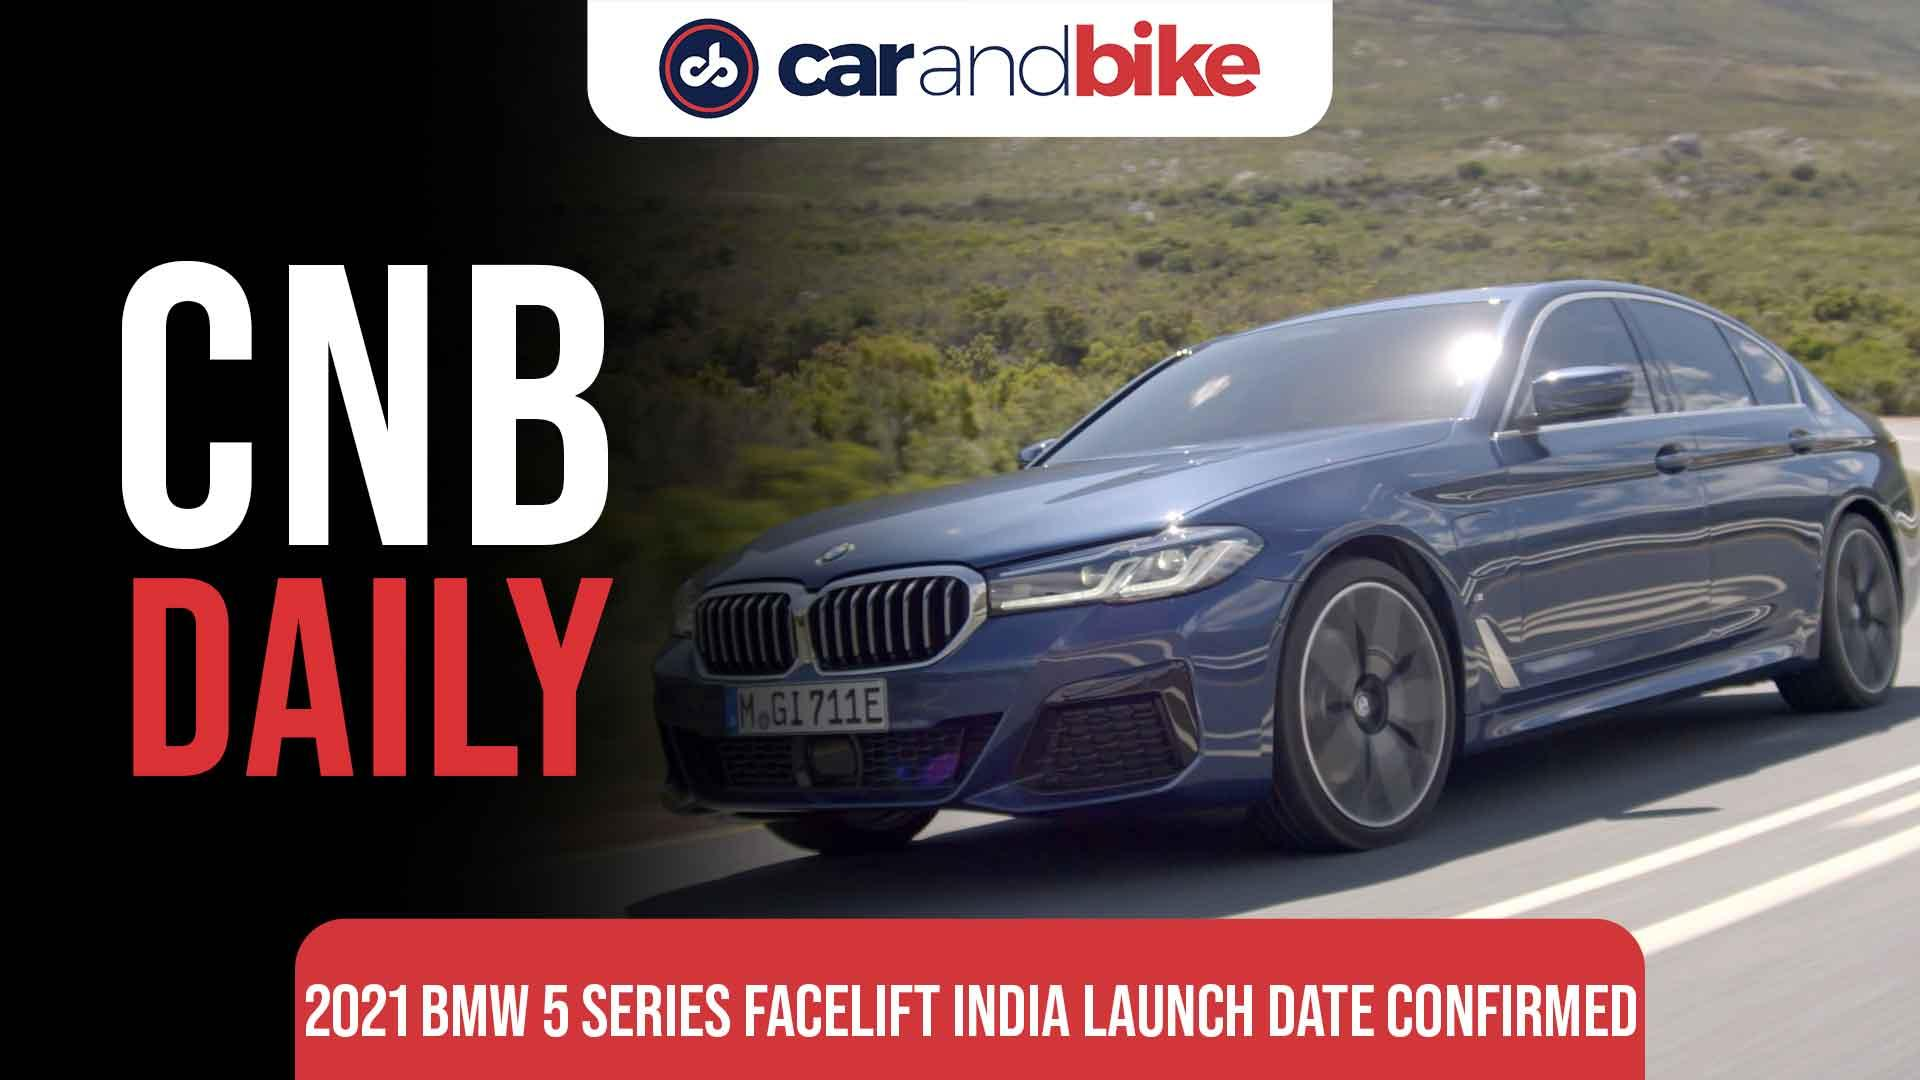 2021 BMW 5 Series Facelift Launch On June 24, 2021